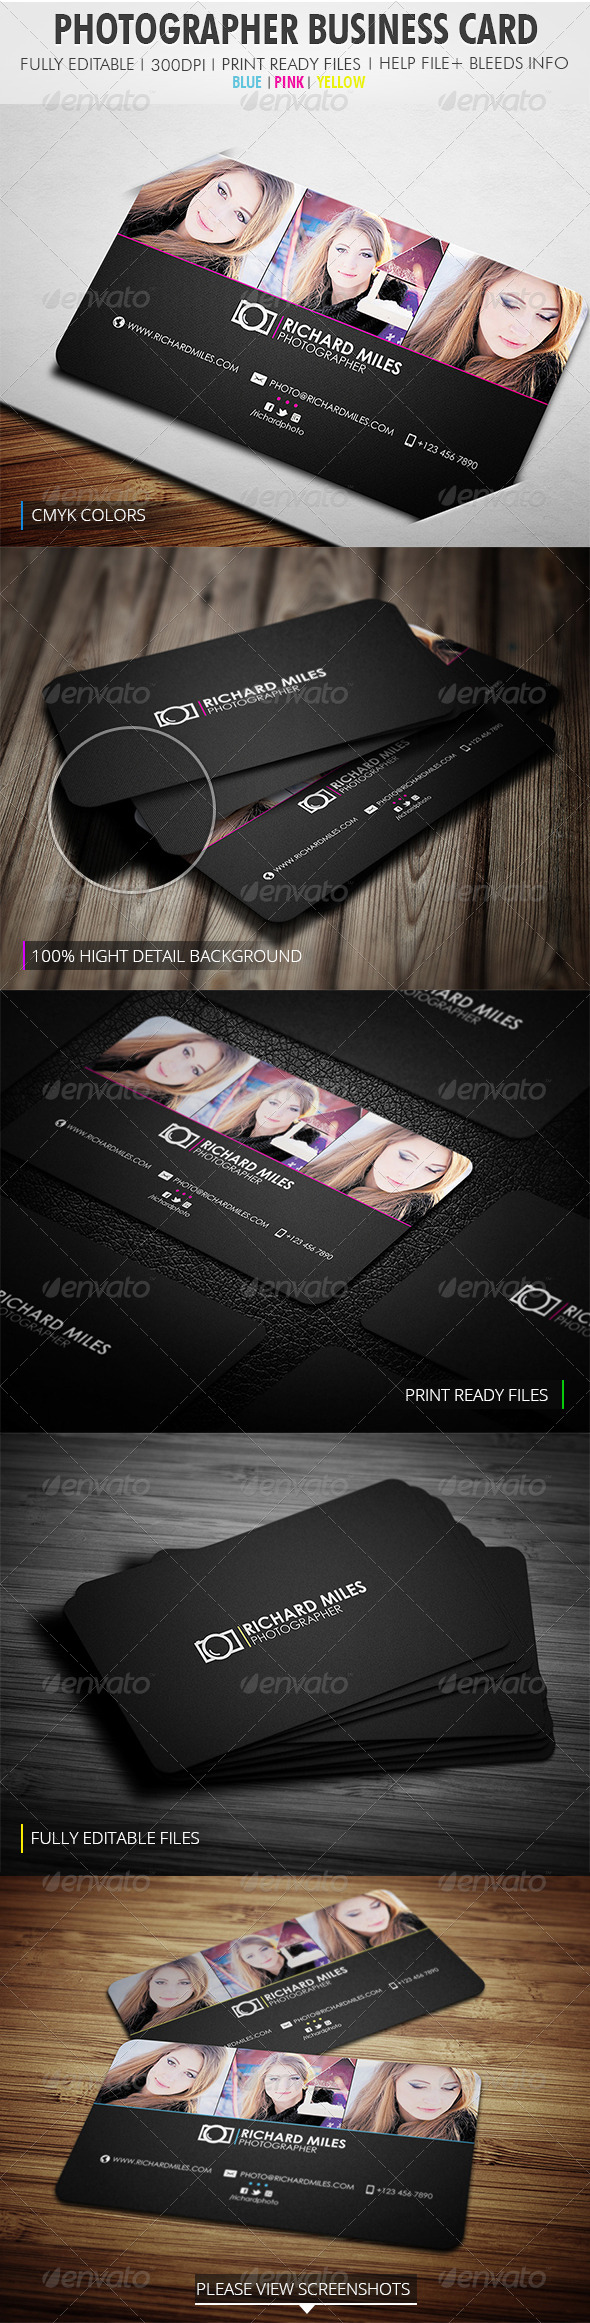 GraphicRiver Photography Business Card 4117956